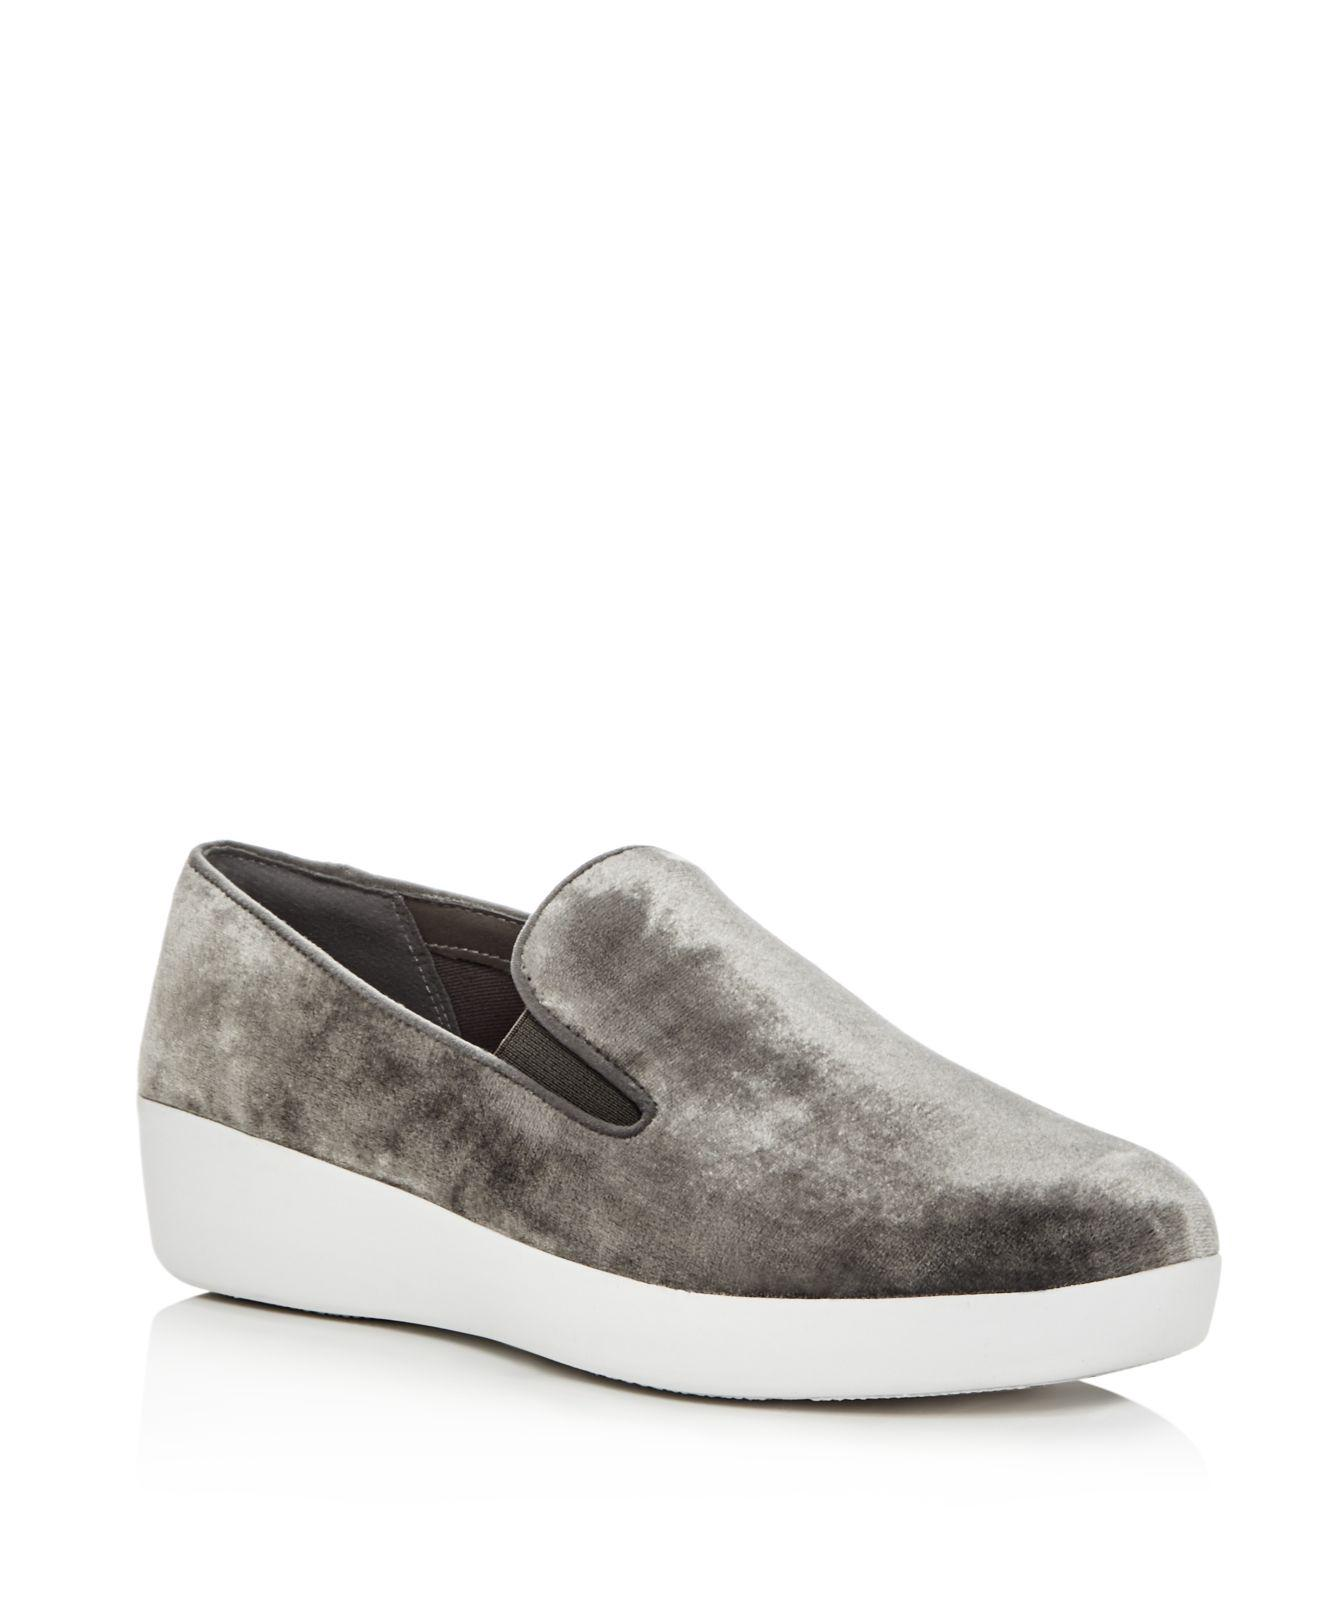 3163c8116502 Lyst - Fitflop Women s Superskate Velvet Slip-on Sneakers in Metallic